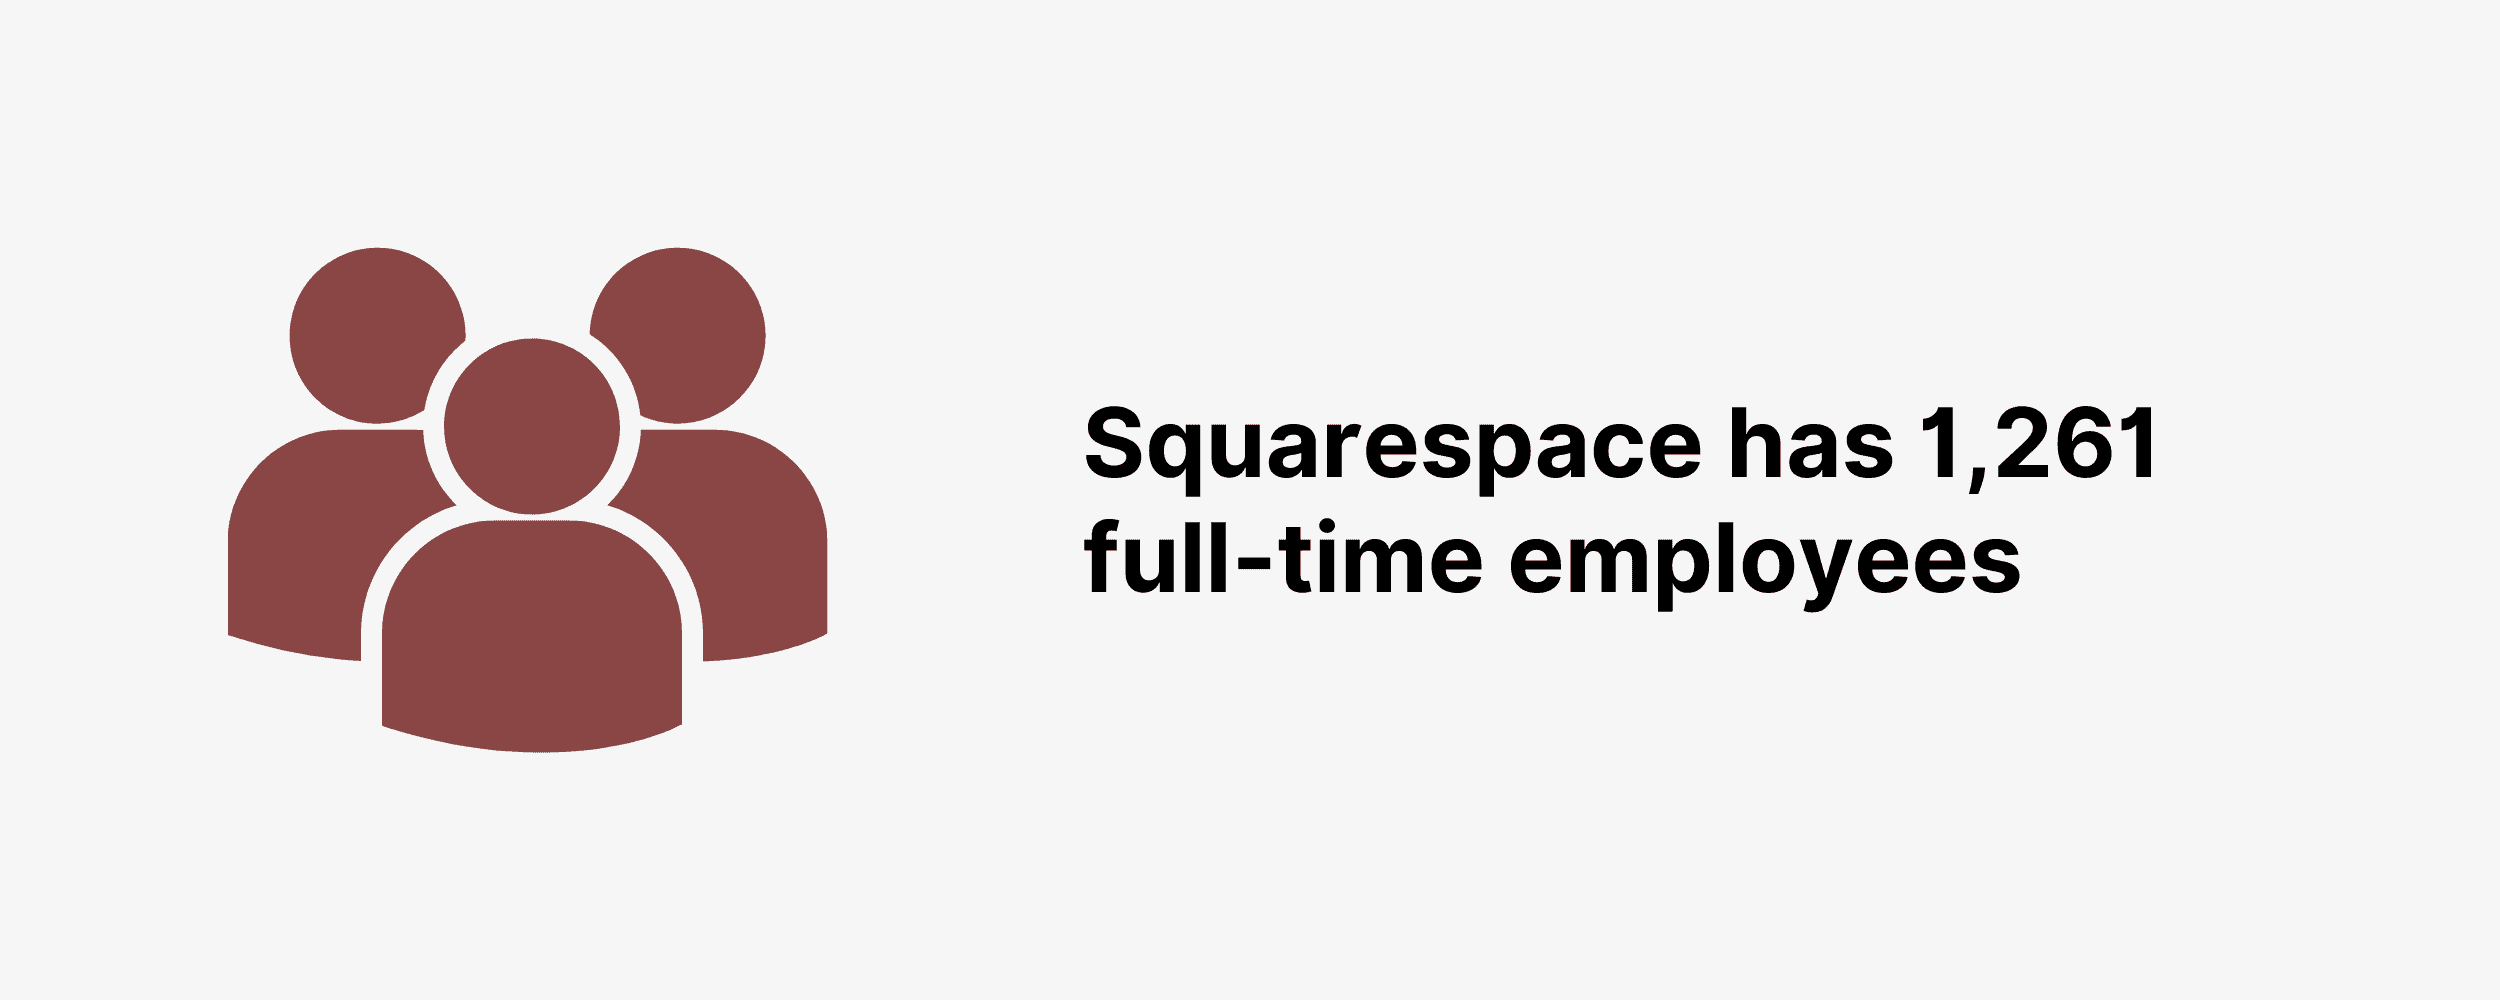 Squarespace has 1,261 full-time employees